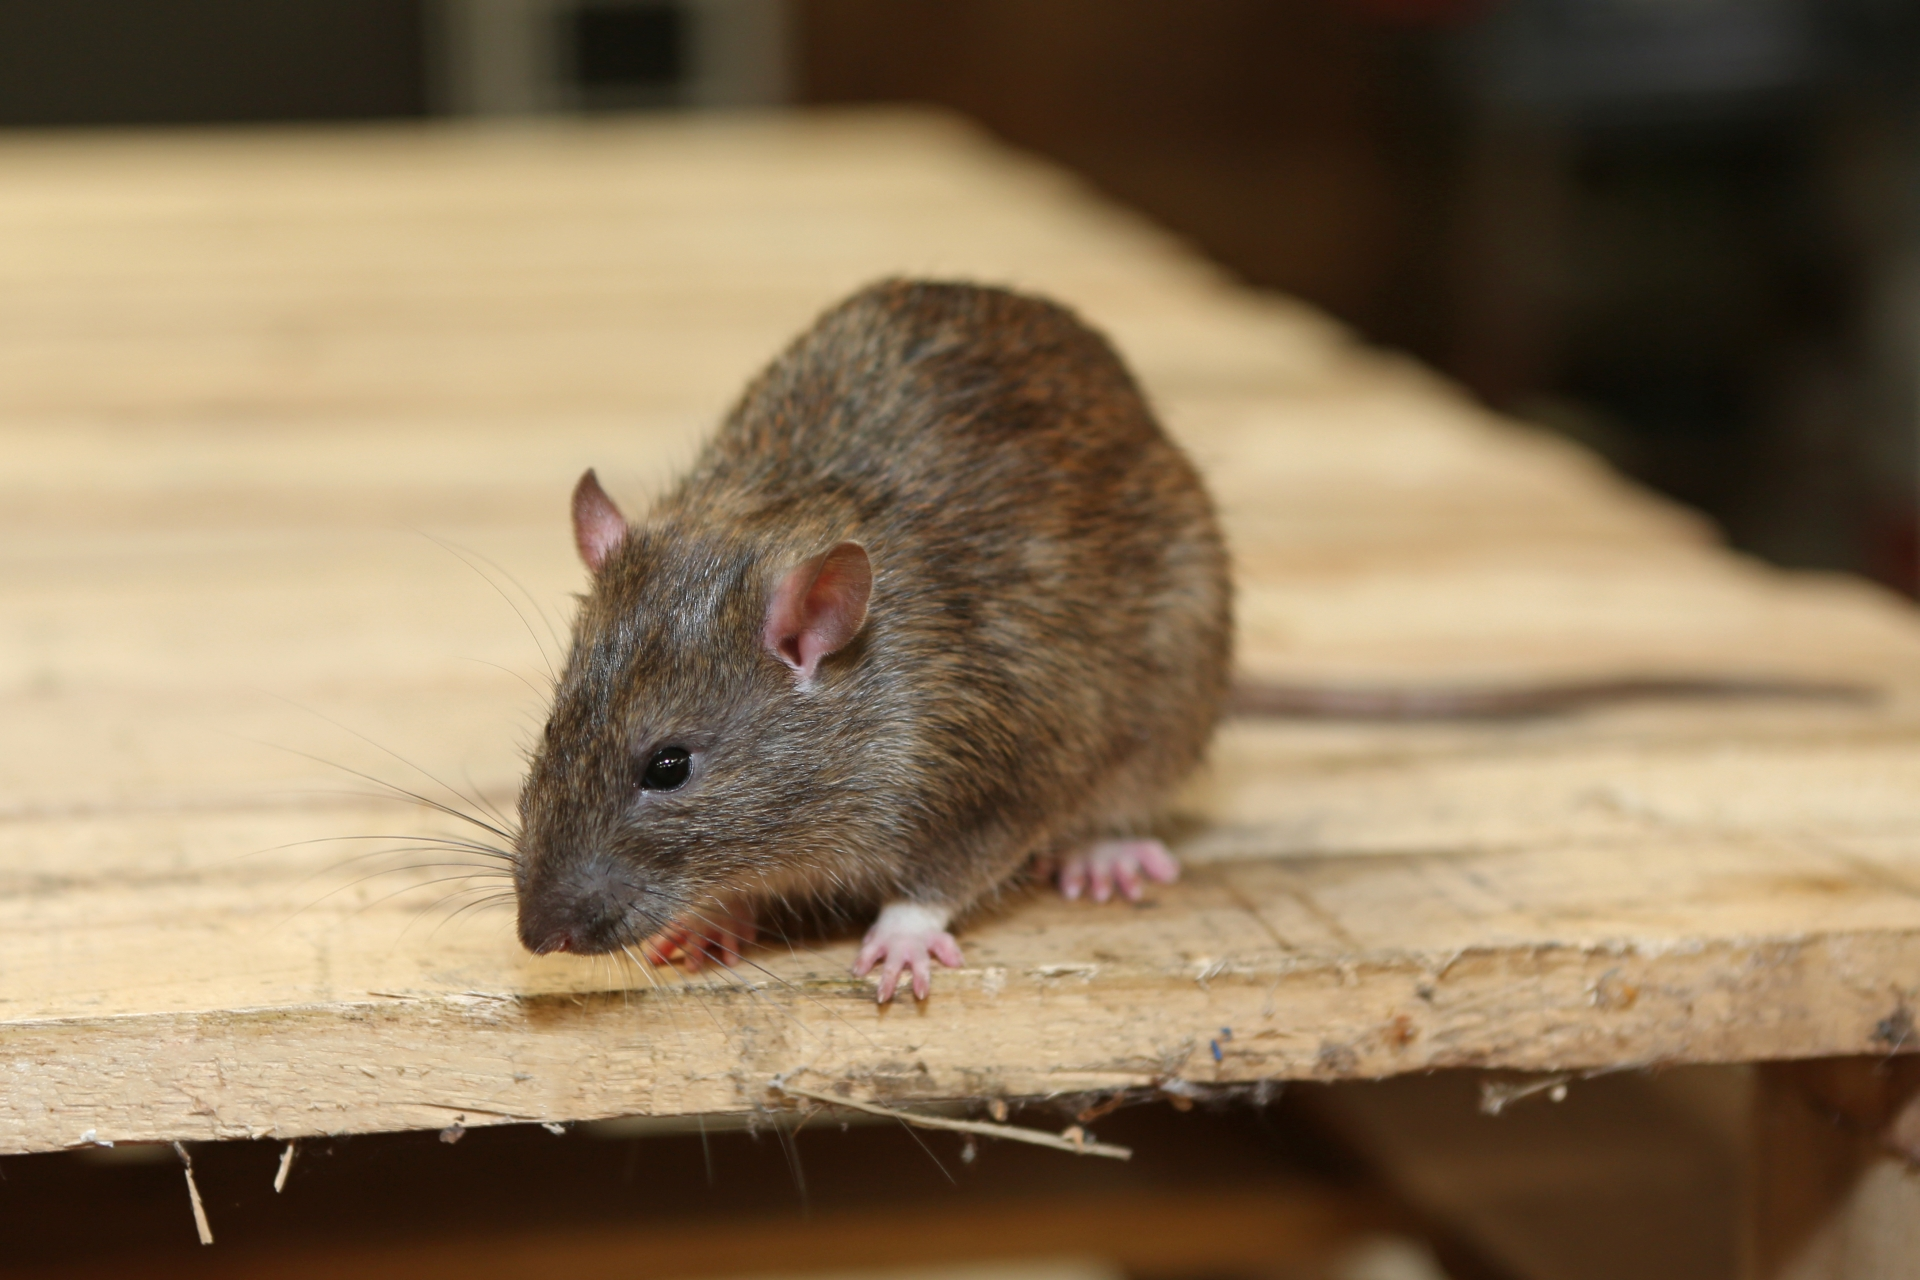 Rat Control, Pest Control in Alexandra Palace, Wood Green, N22. Call Now 020 8166 9746